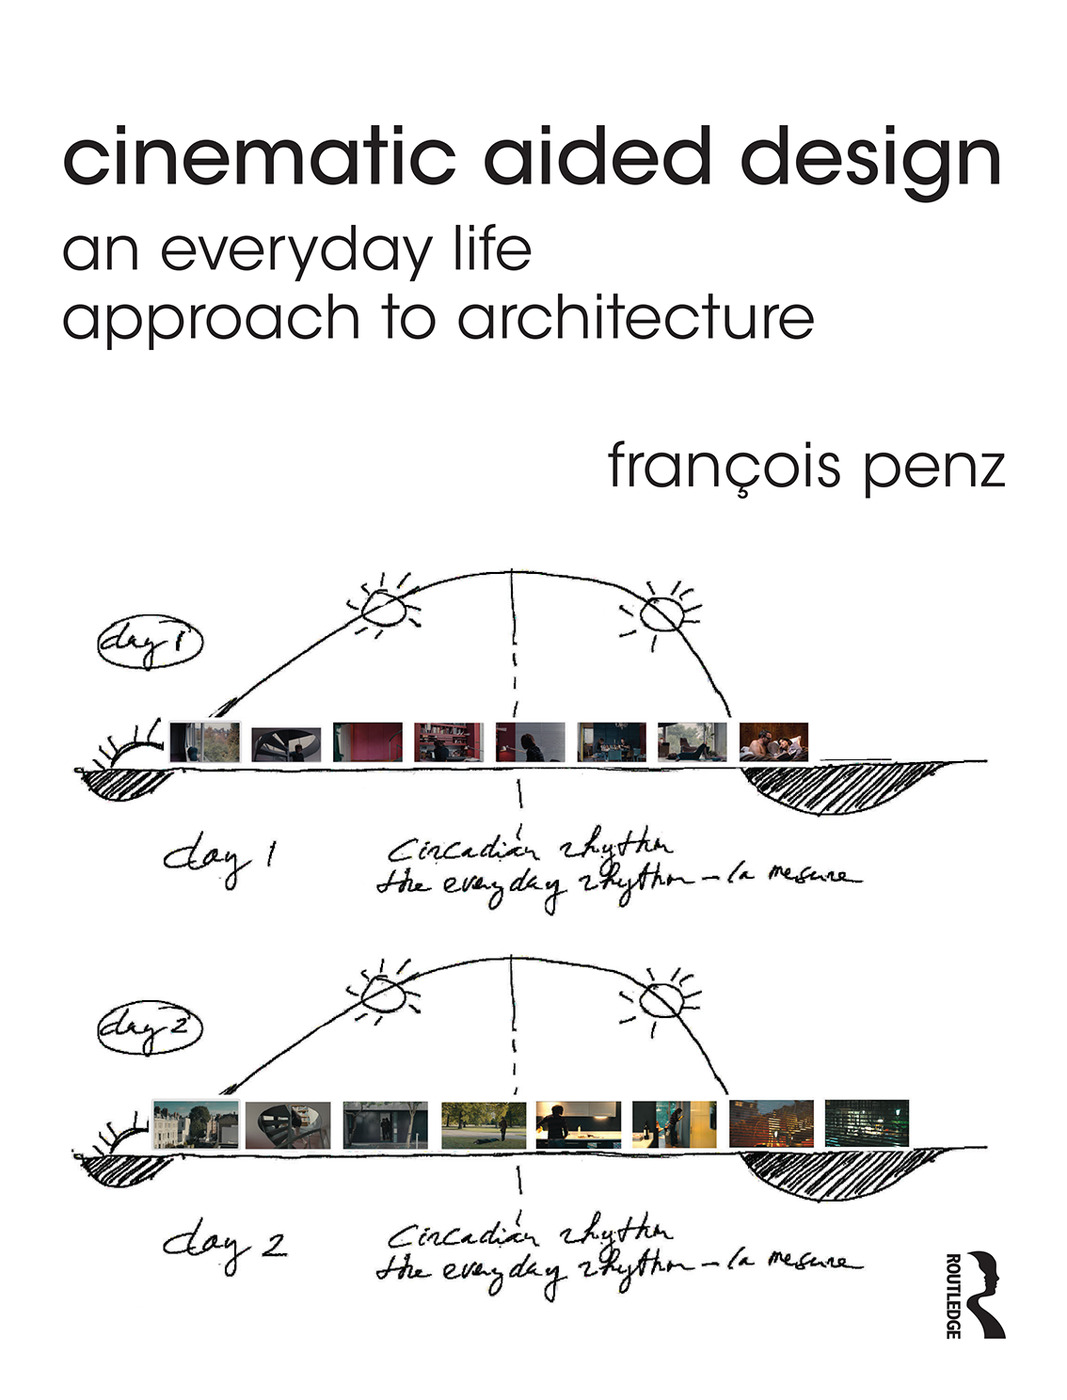 Cinematic Aided Design: An Everyday Life Approach to Architecture book cover